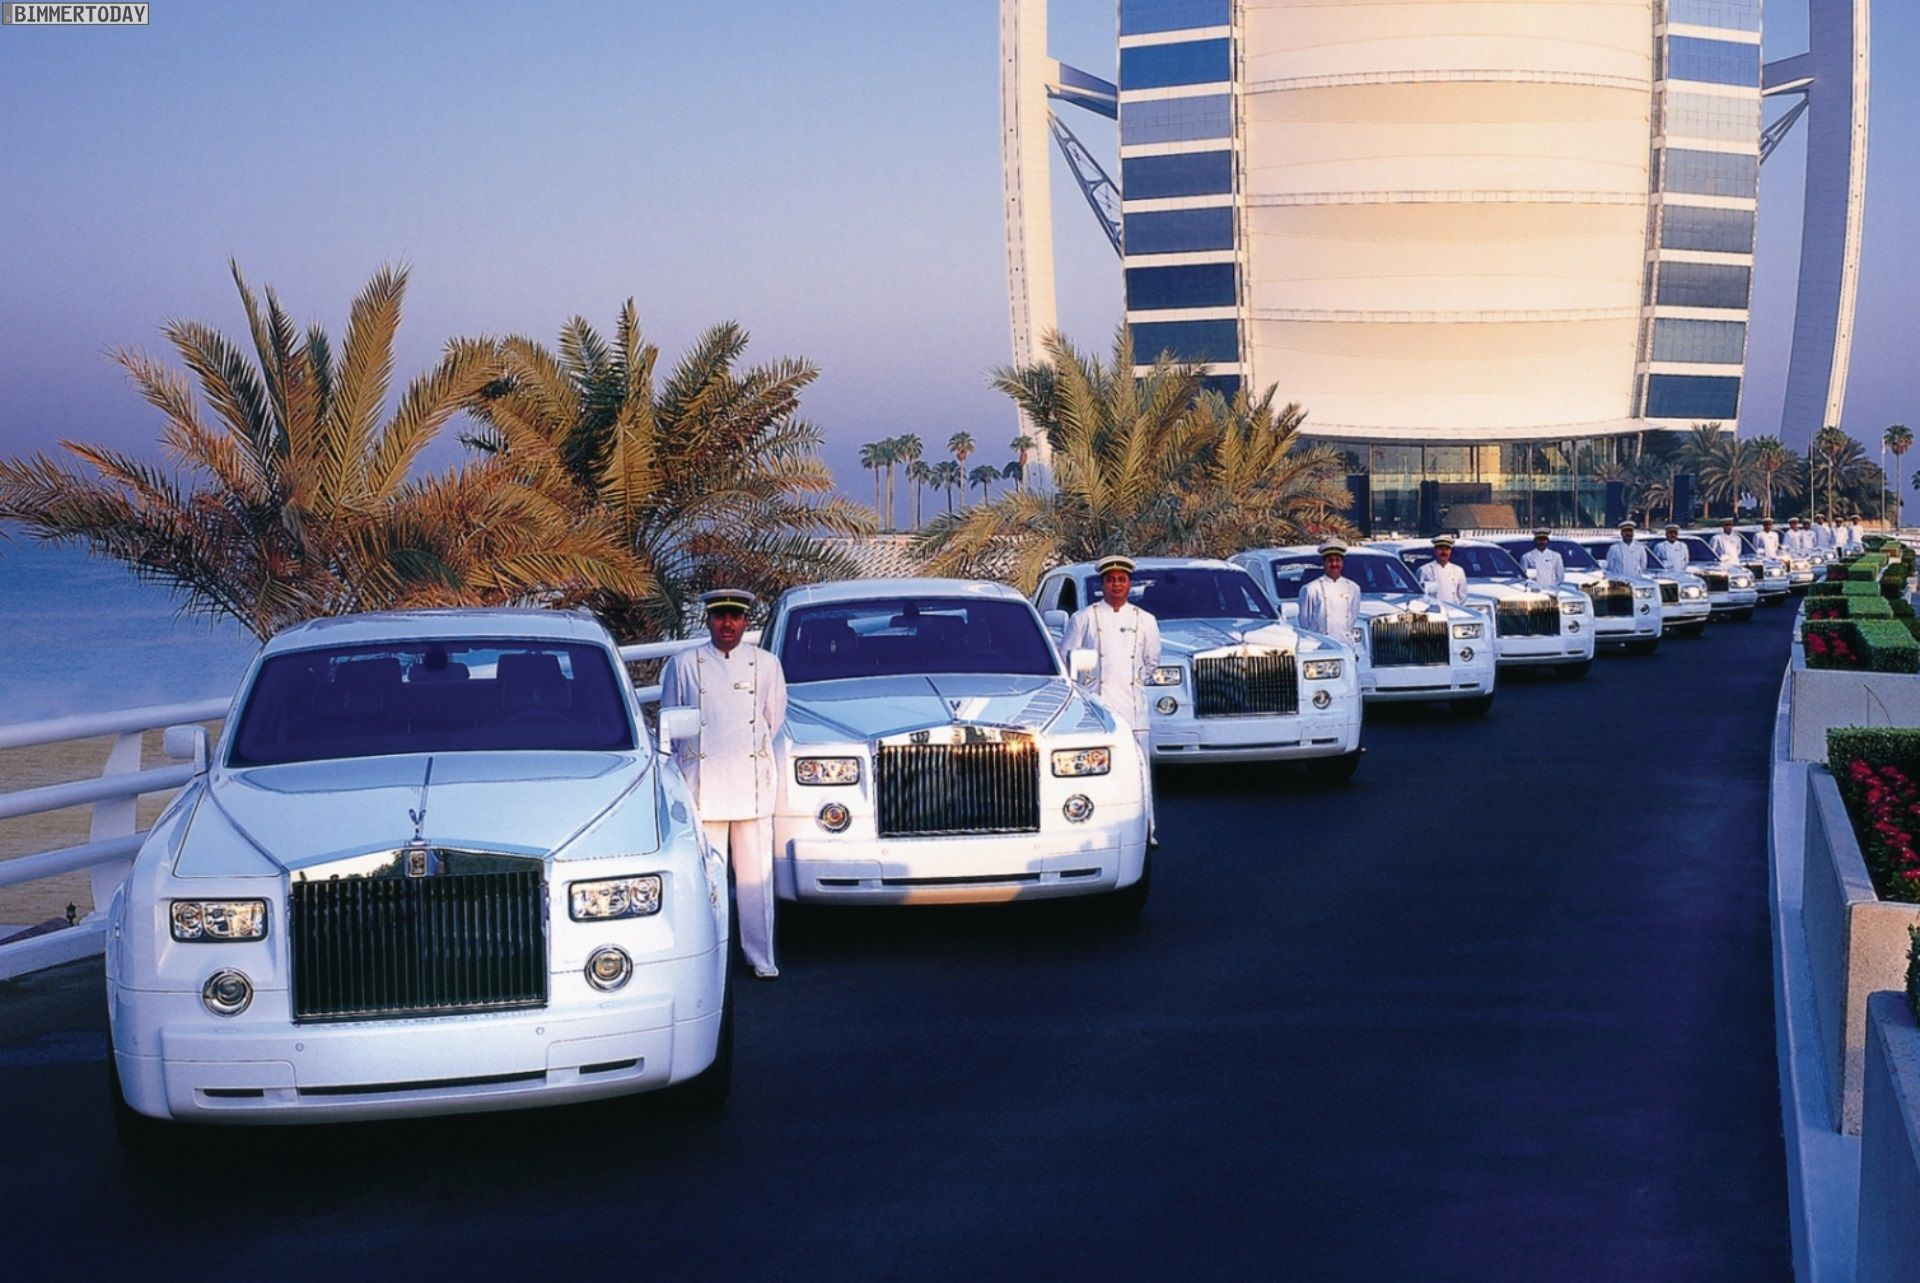 Dubai S Burj Al Arab Hotel Has Recently Added 4 More Rolls Royces To Its Fleet